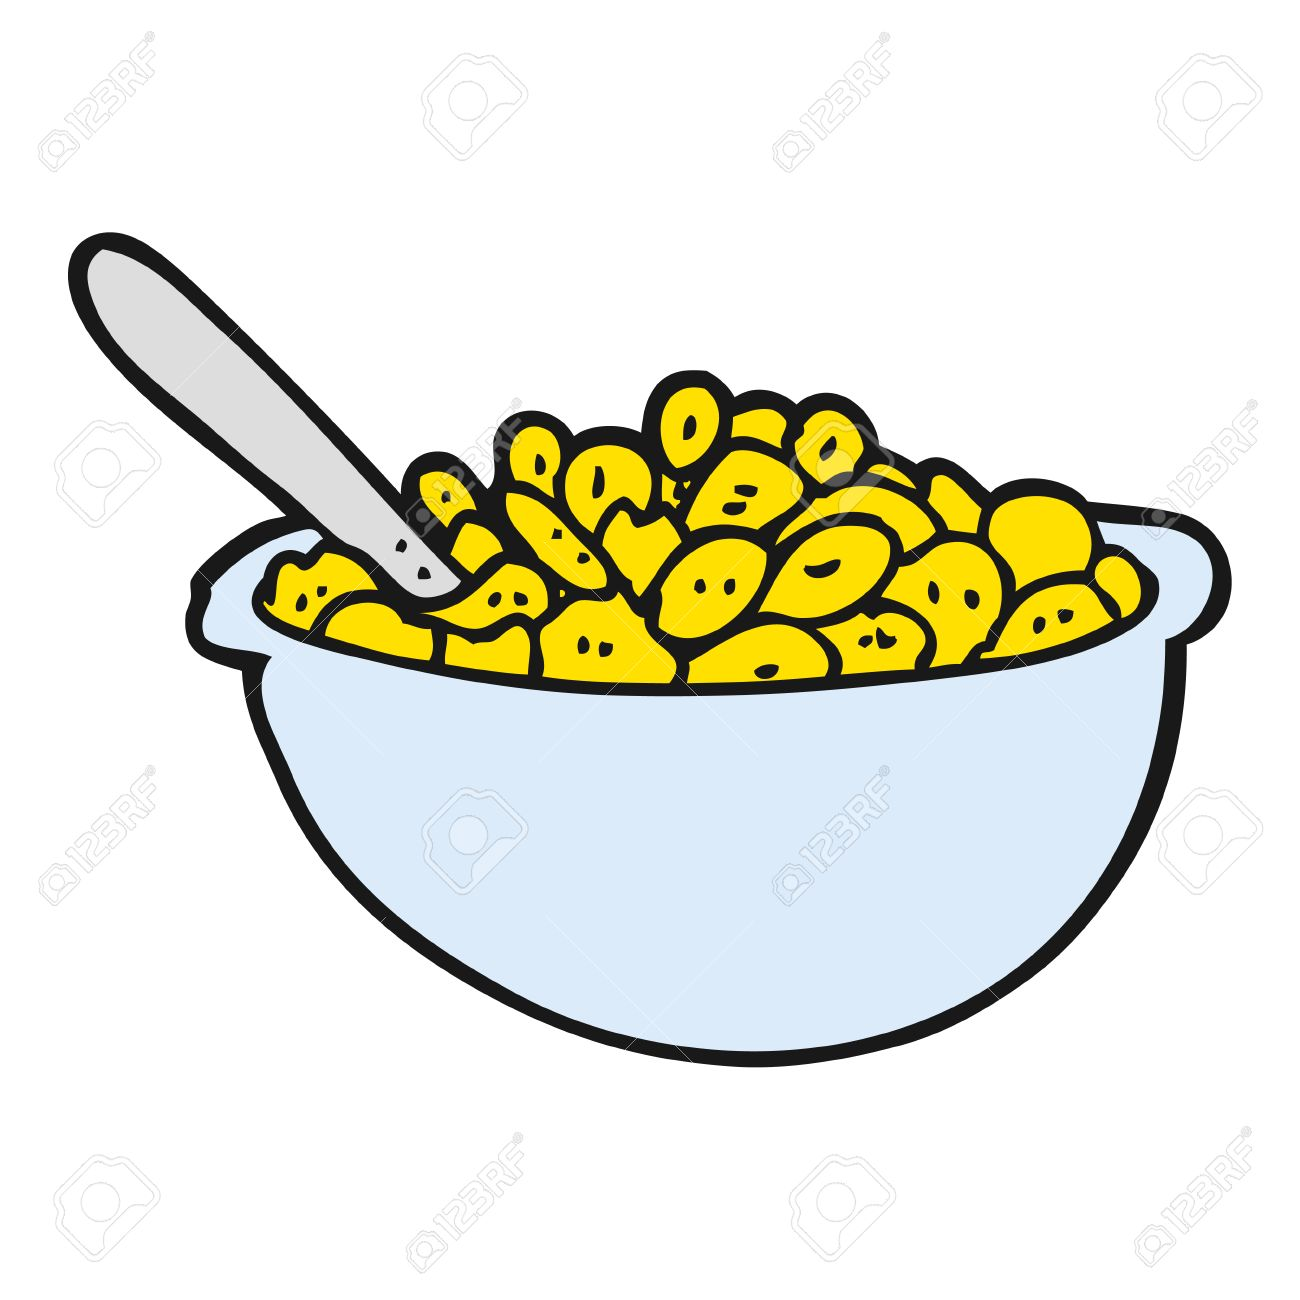 freehand drawn cartoon bowl of cereal - 54066351